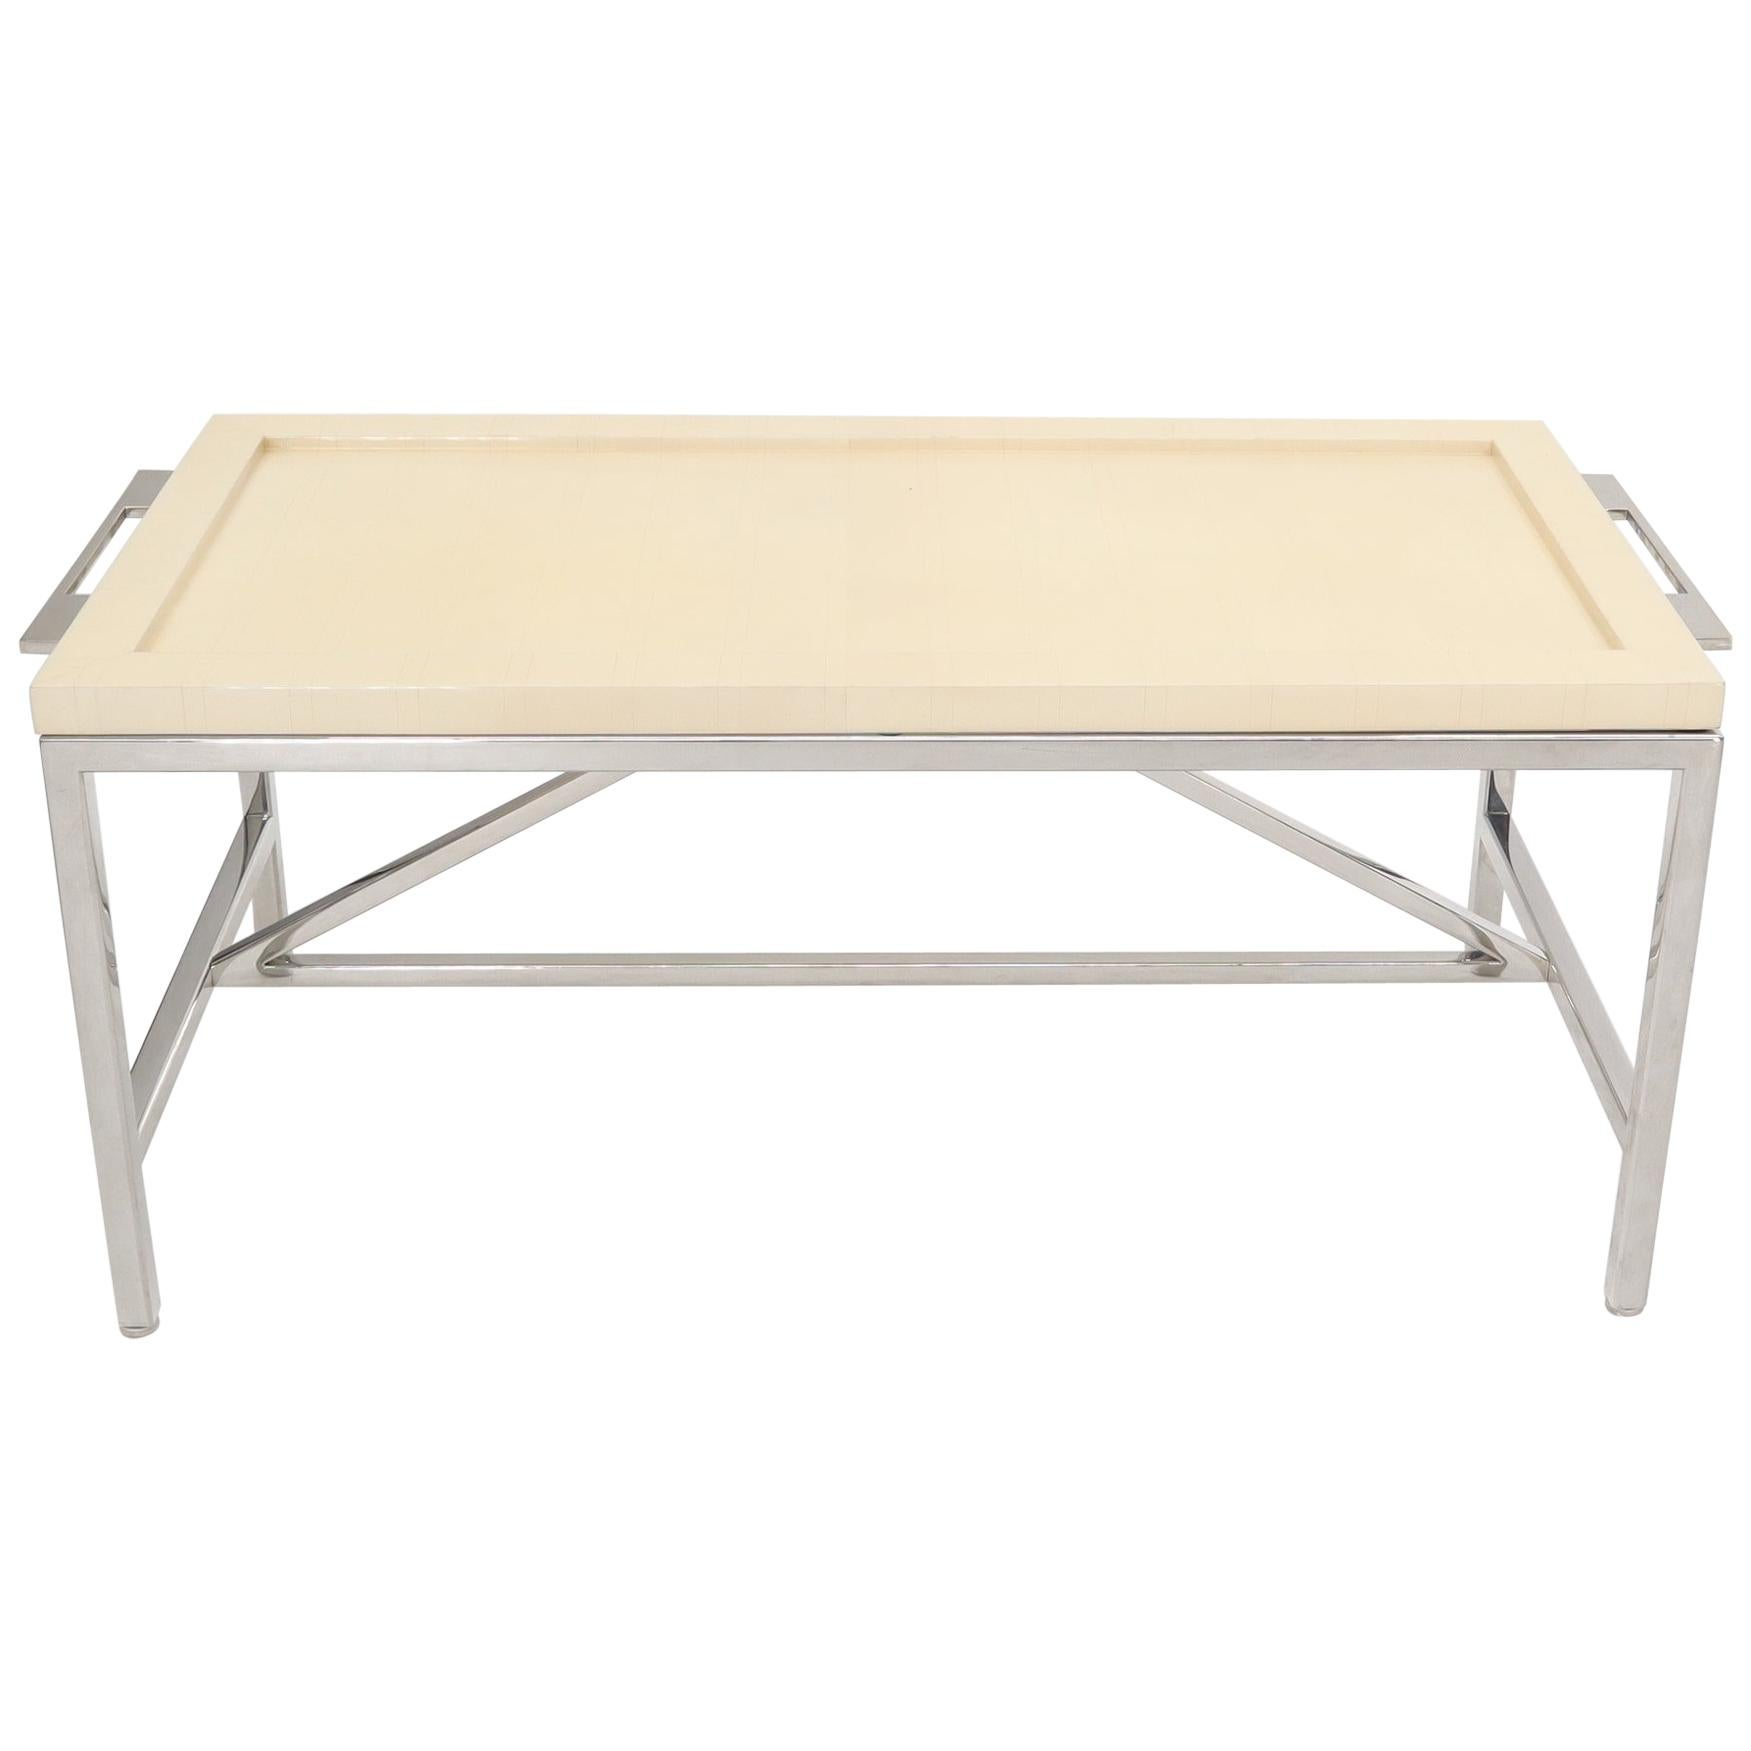 Lacquered Parchment Tray Stainless Steel Base Coffee Table